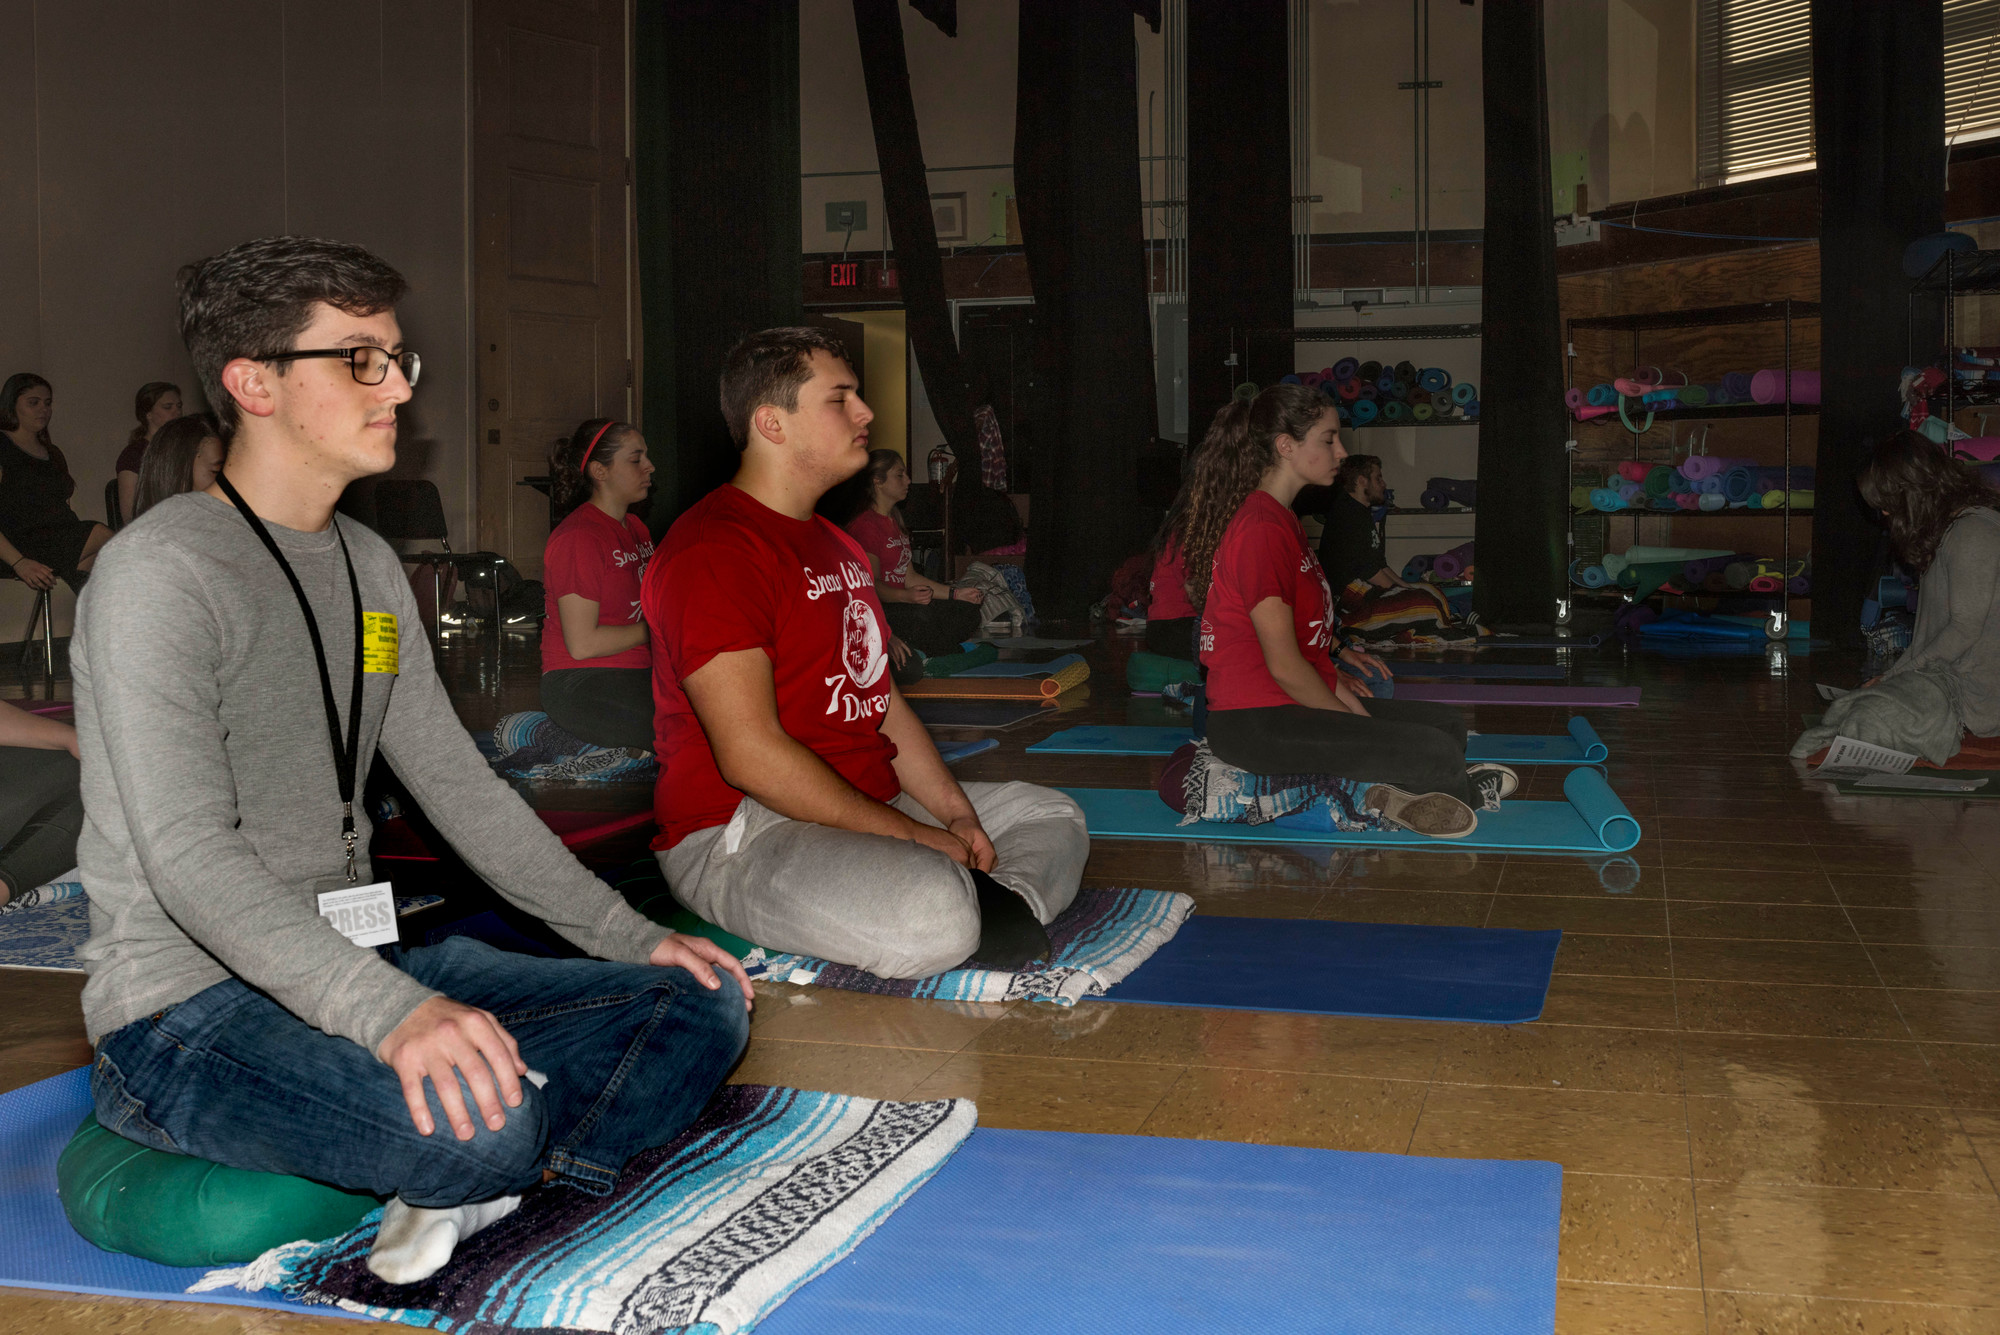 Herald reporter Nick Ciccone attended a new mindfulness meditation course at LHS recently, which DeBetta created after learning the practice at the University of Massachusetts.